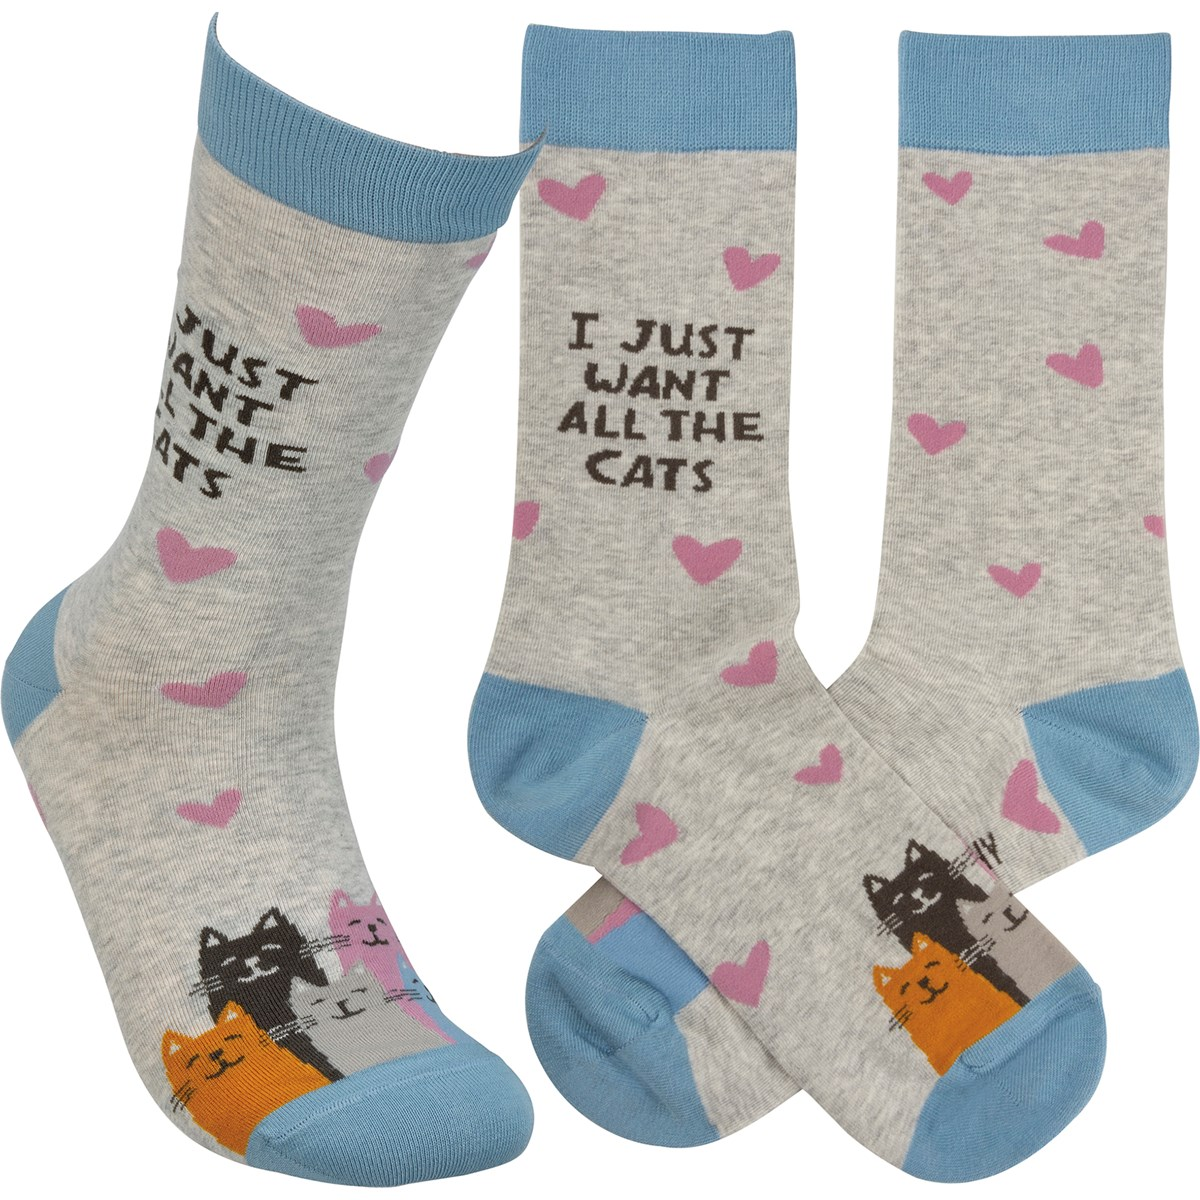 Socks - I Just Want All The Cats - One Size Fits Most - Cotton, Nylon, Spandex